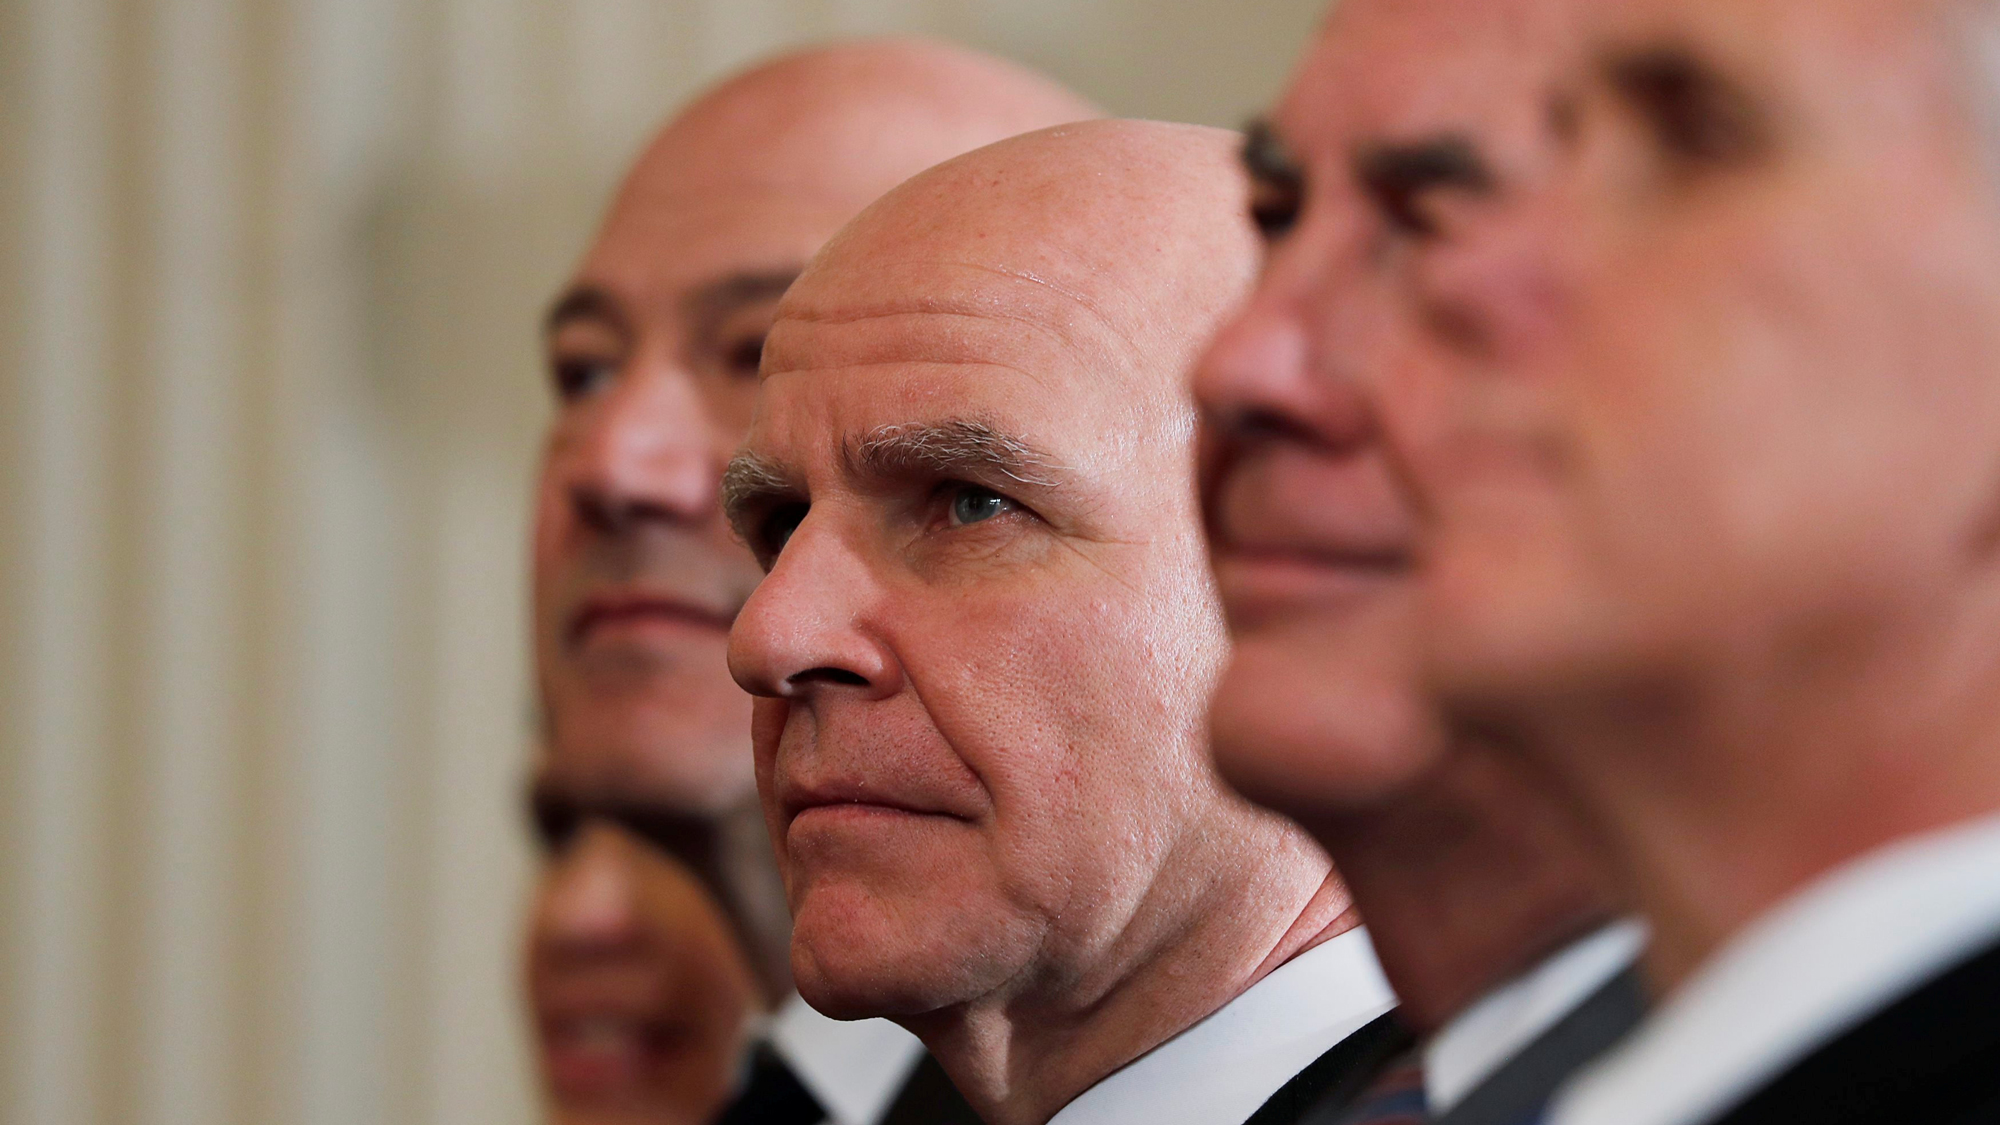 In this close-up shot, former National Security Advisor H.R. McMaster listens as he sits between former White House economic advisor Gary Cohn (L), former Secretary of State Rex Tillerson and Vice President Mike Pence (R).